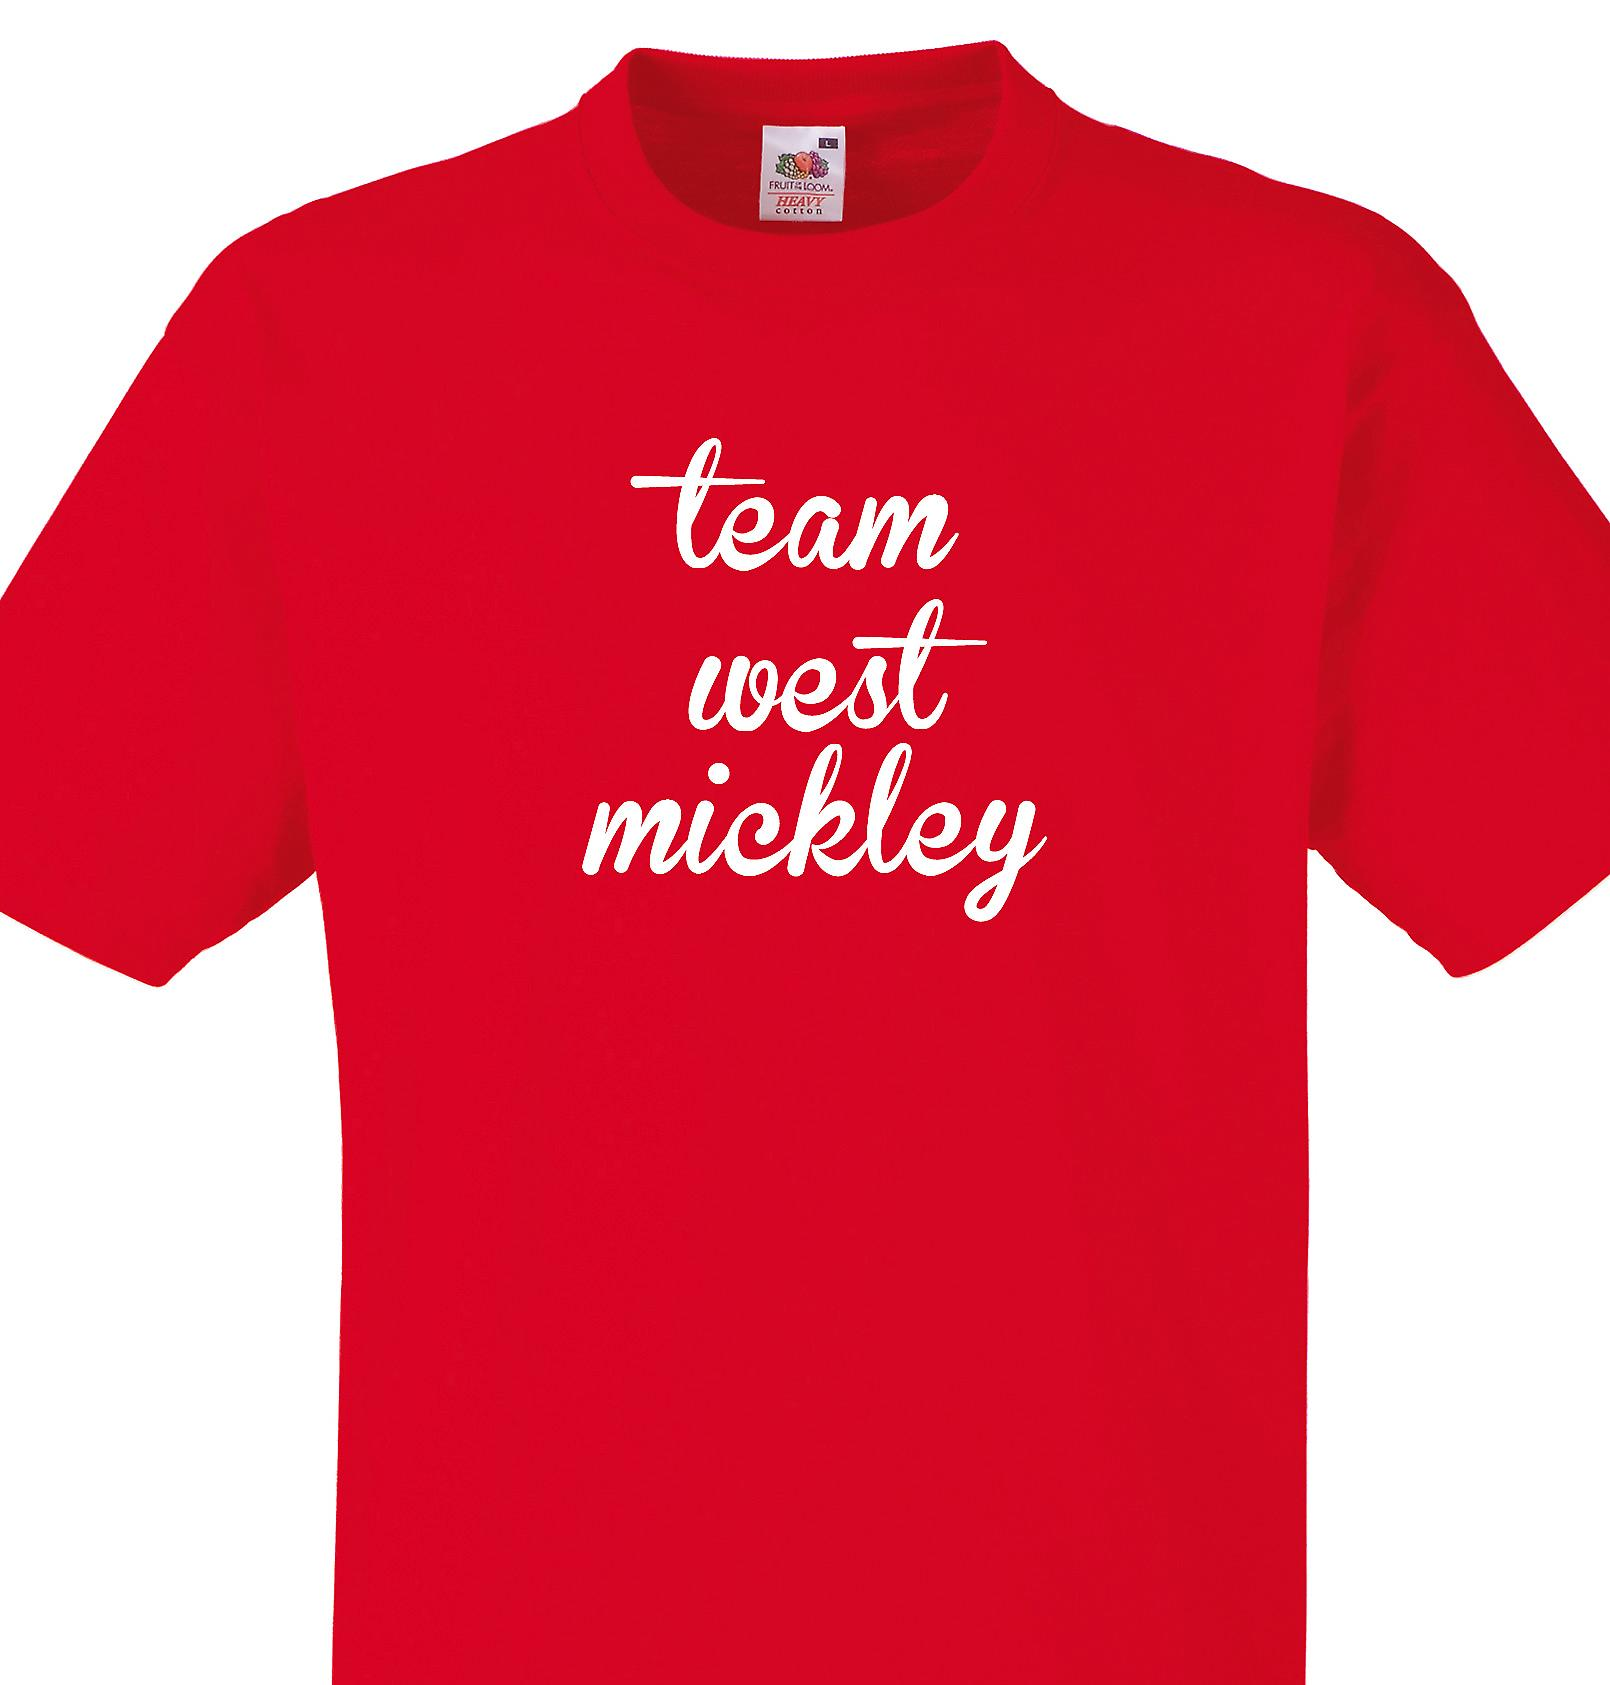 Team West mickley Red T shirt